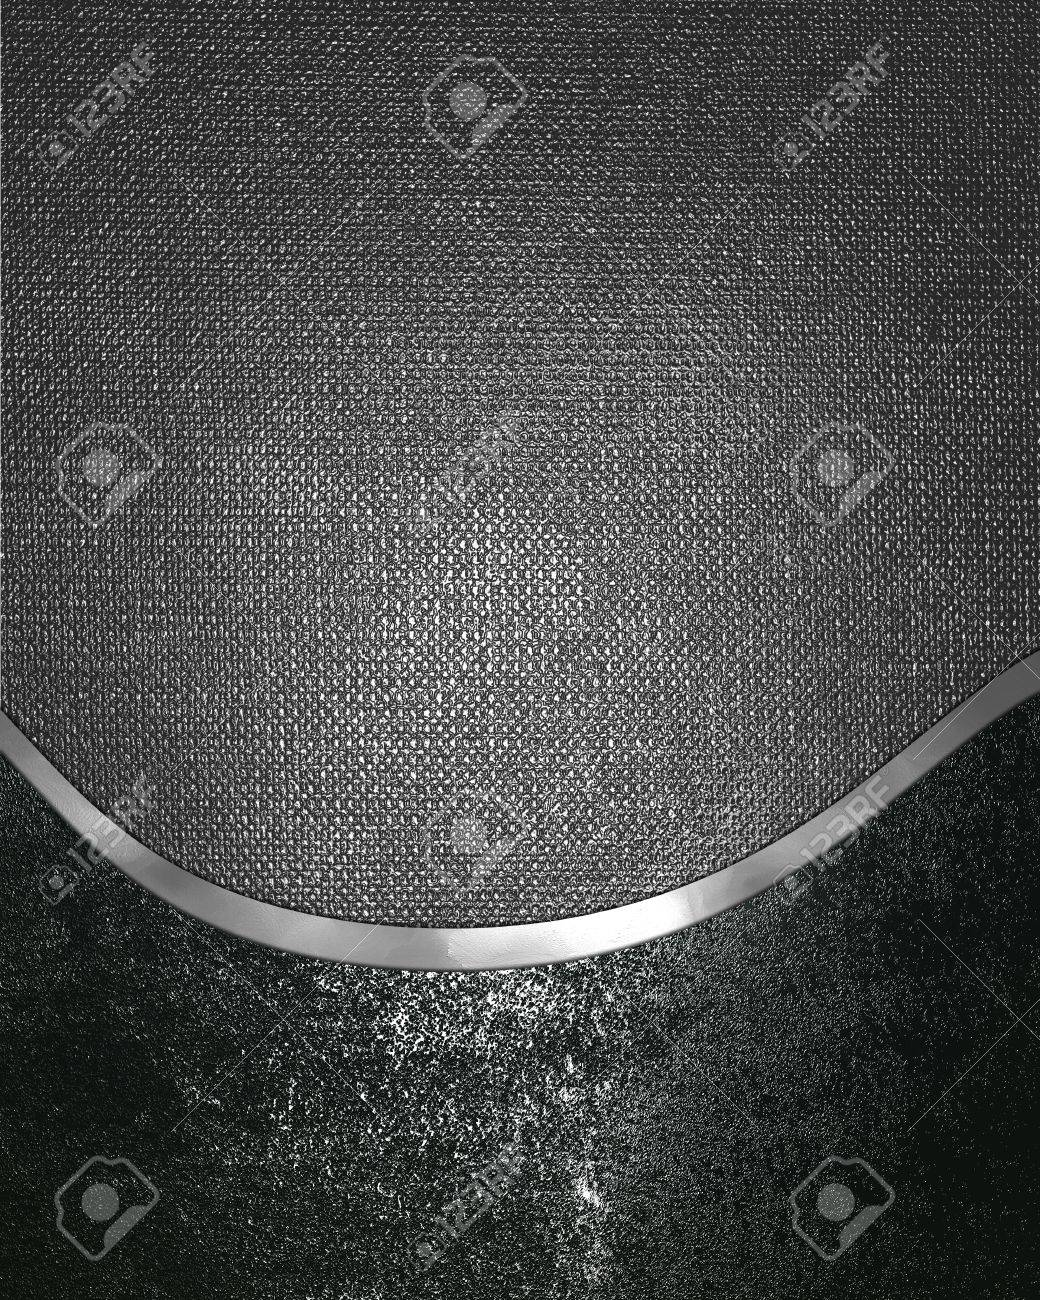 Template for design. grunge iron texture with silver ornament edge Stock Photo - 18247065